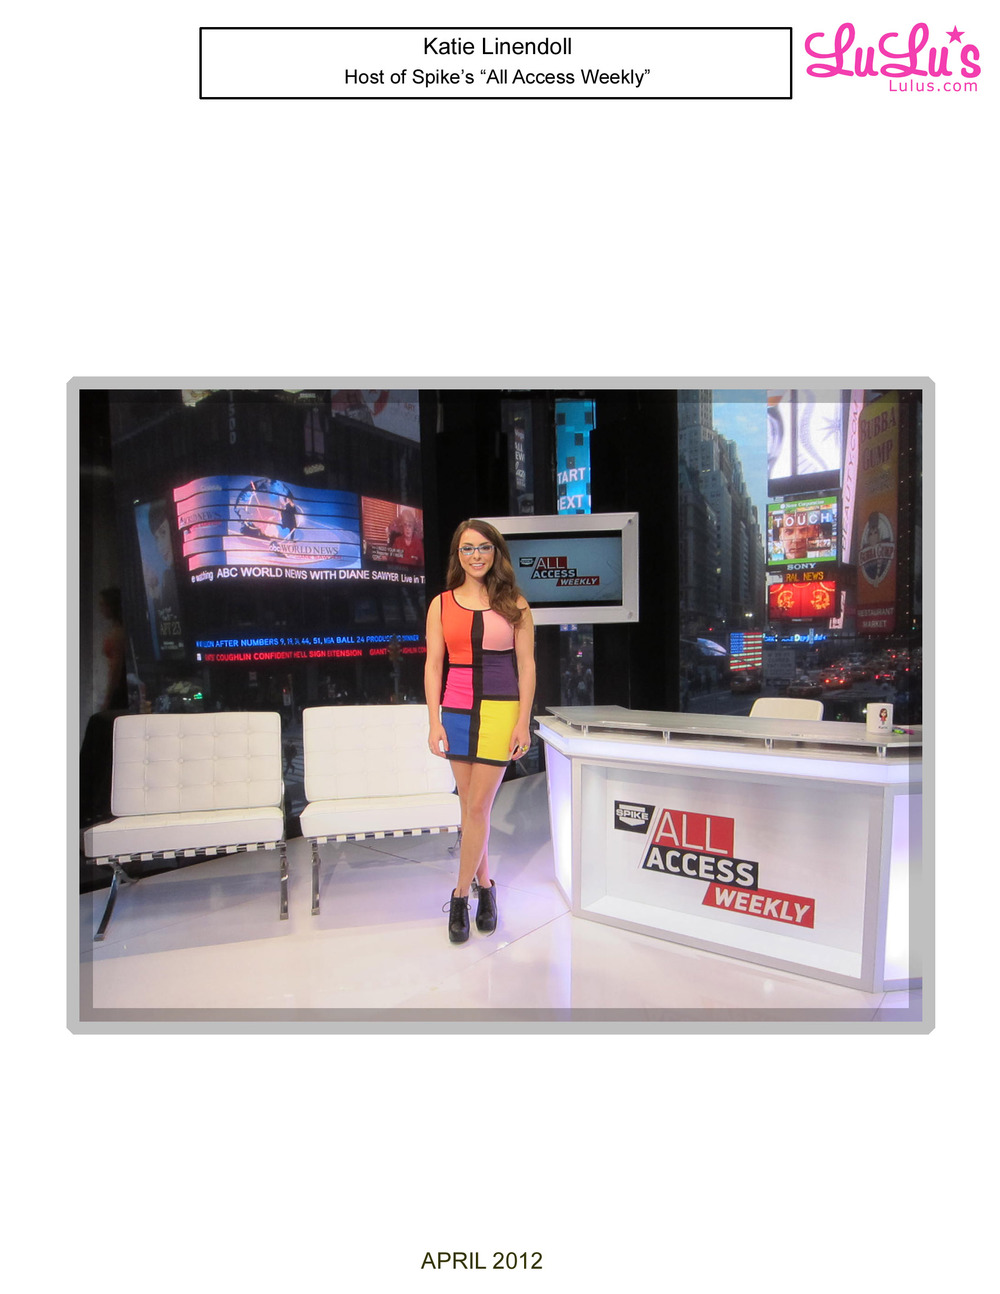 SpikeTV_AllAccessWeekly_April52012_DressEdit.jpg